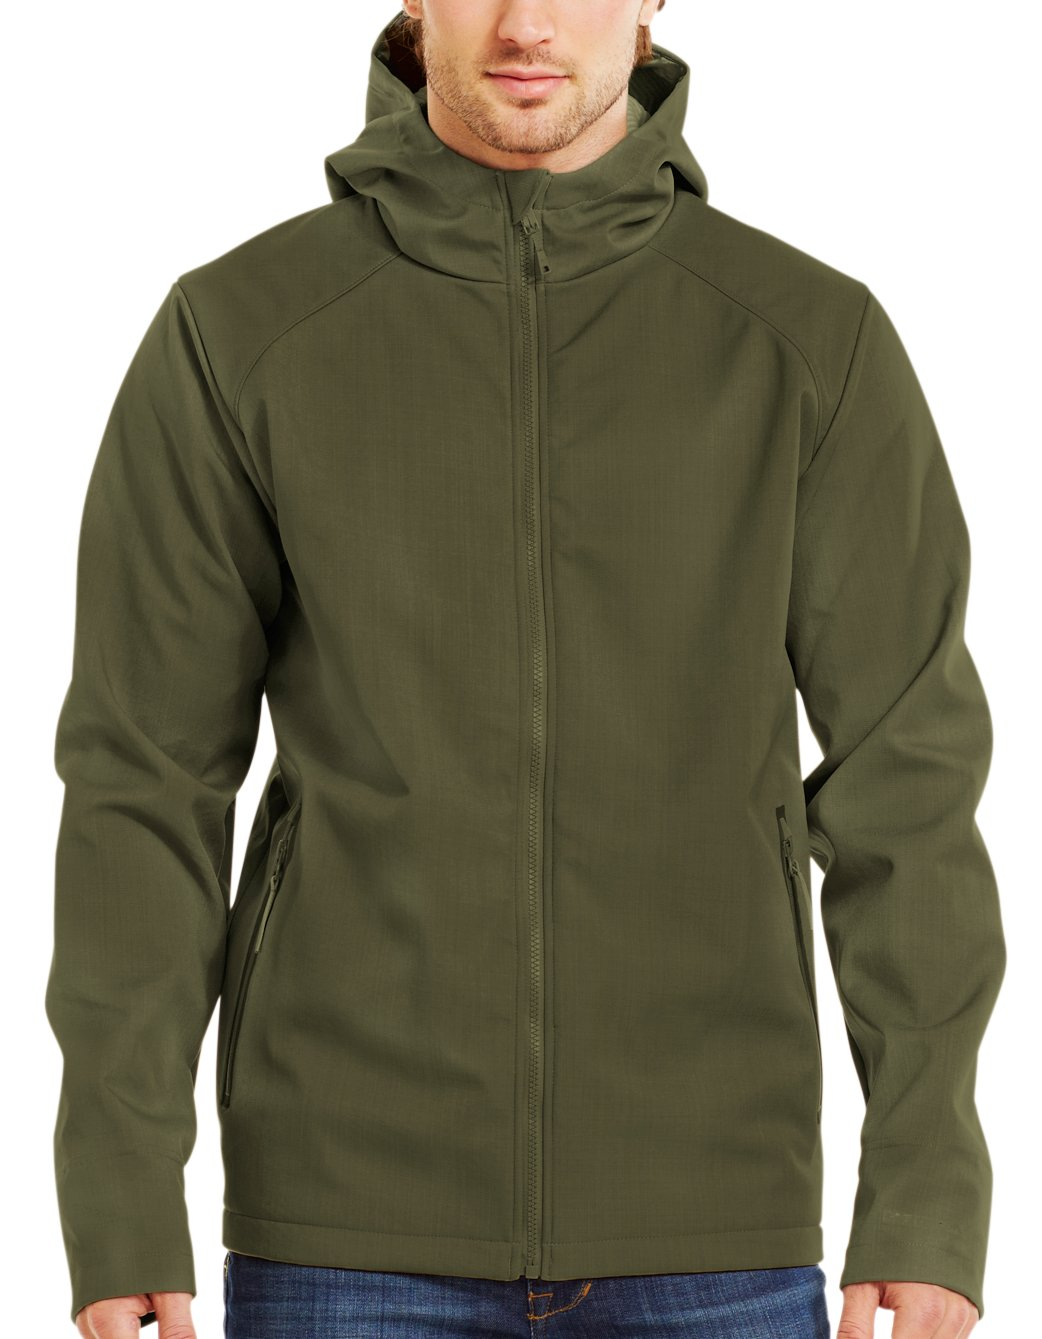 Men's ColdGear® Infrared Receptor Softshell, GREENHEAD, zoomed image